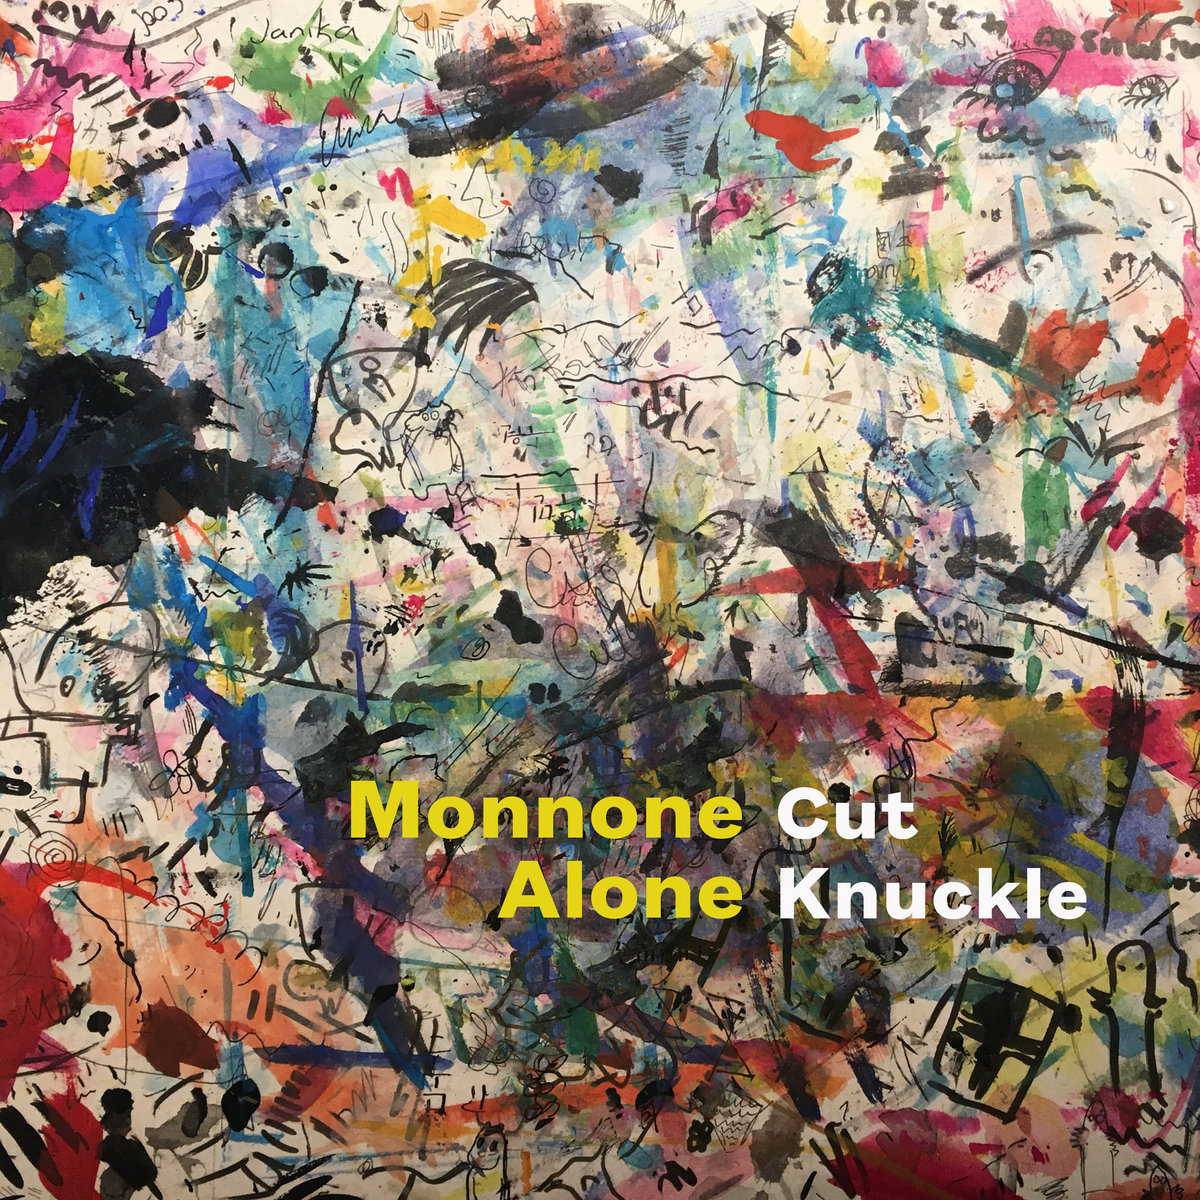 Difficult boy from cut knuckle single by monnone alone